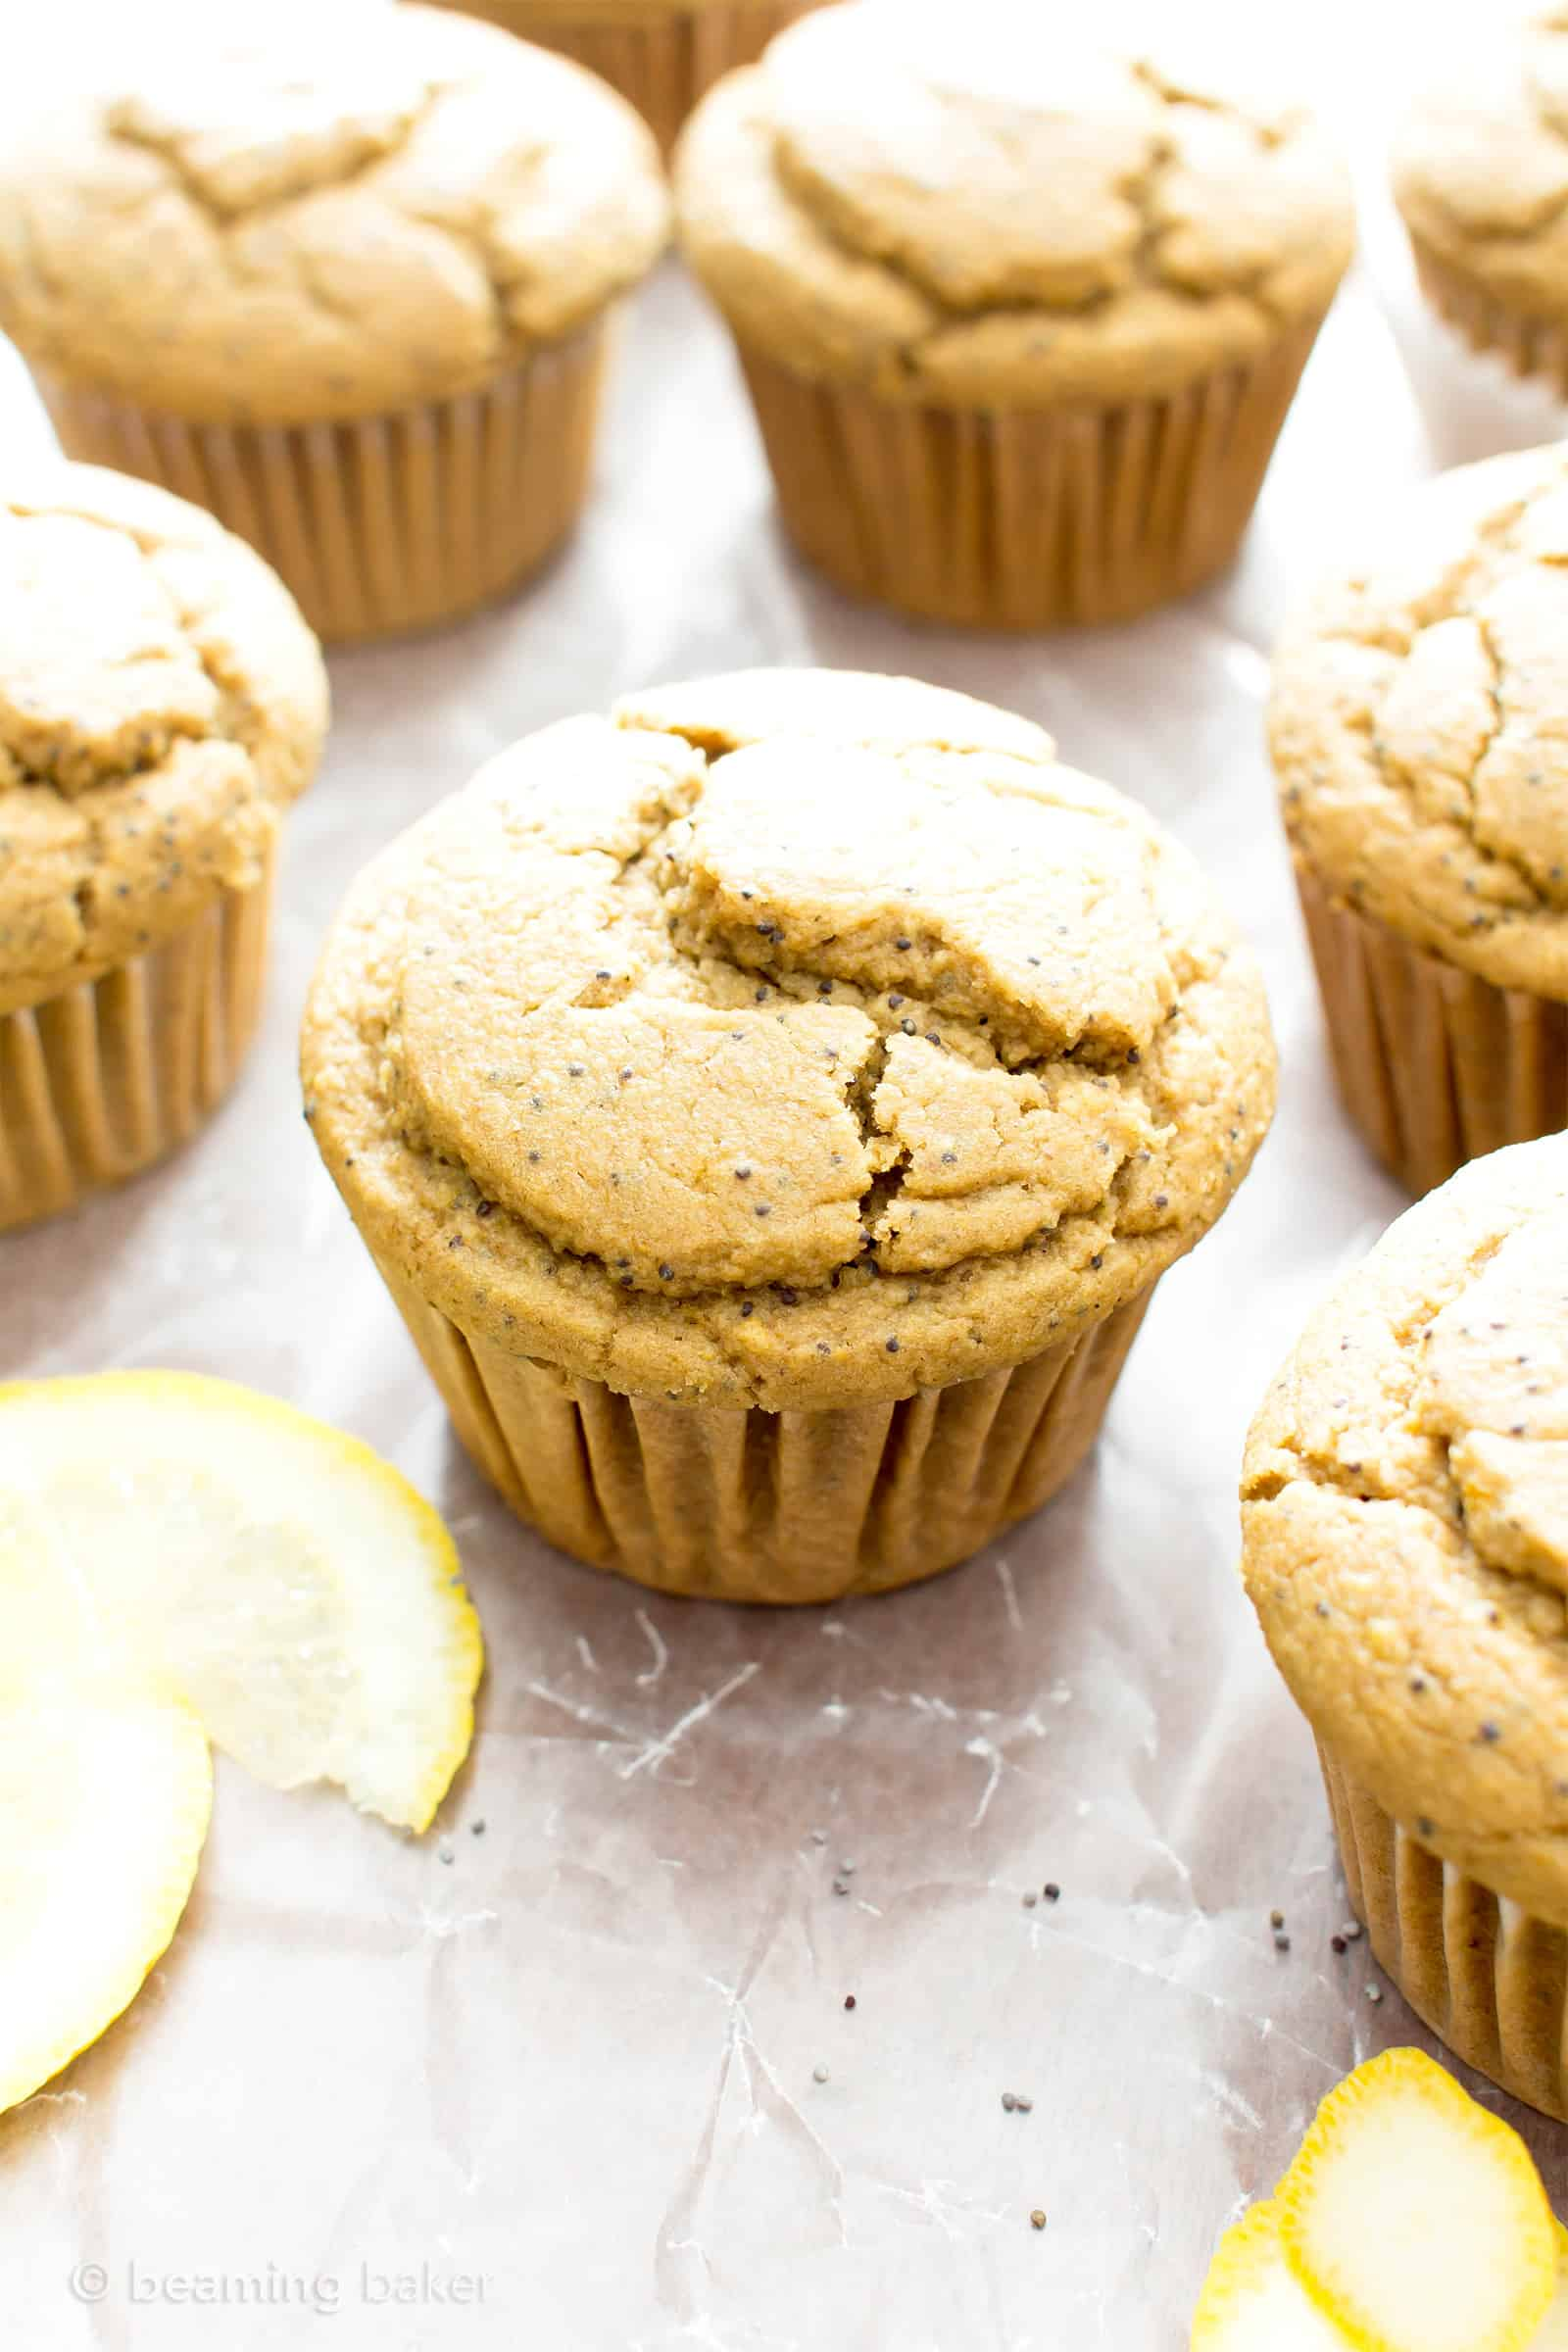 Healthy Lemon Poppy Seed Muffins Recipe (V, GF): wonderfully moist and fluffy muffins bursting with poppy seeds and lemon flavor. The perfect balance of sweet and tart! #Vegan #GlutenFree #DairyFree #Breakfast #Snacks | Recipe on BeamingBaker.com